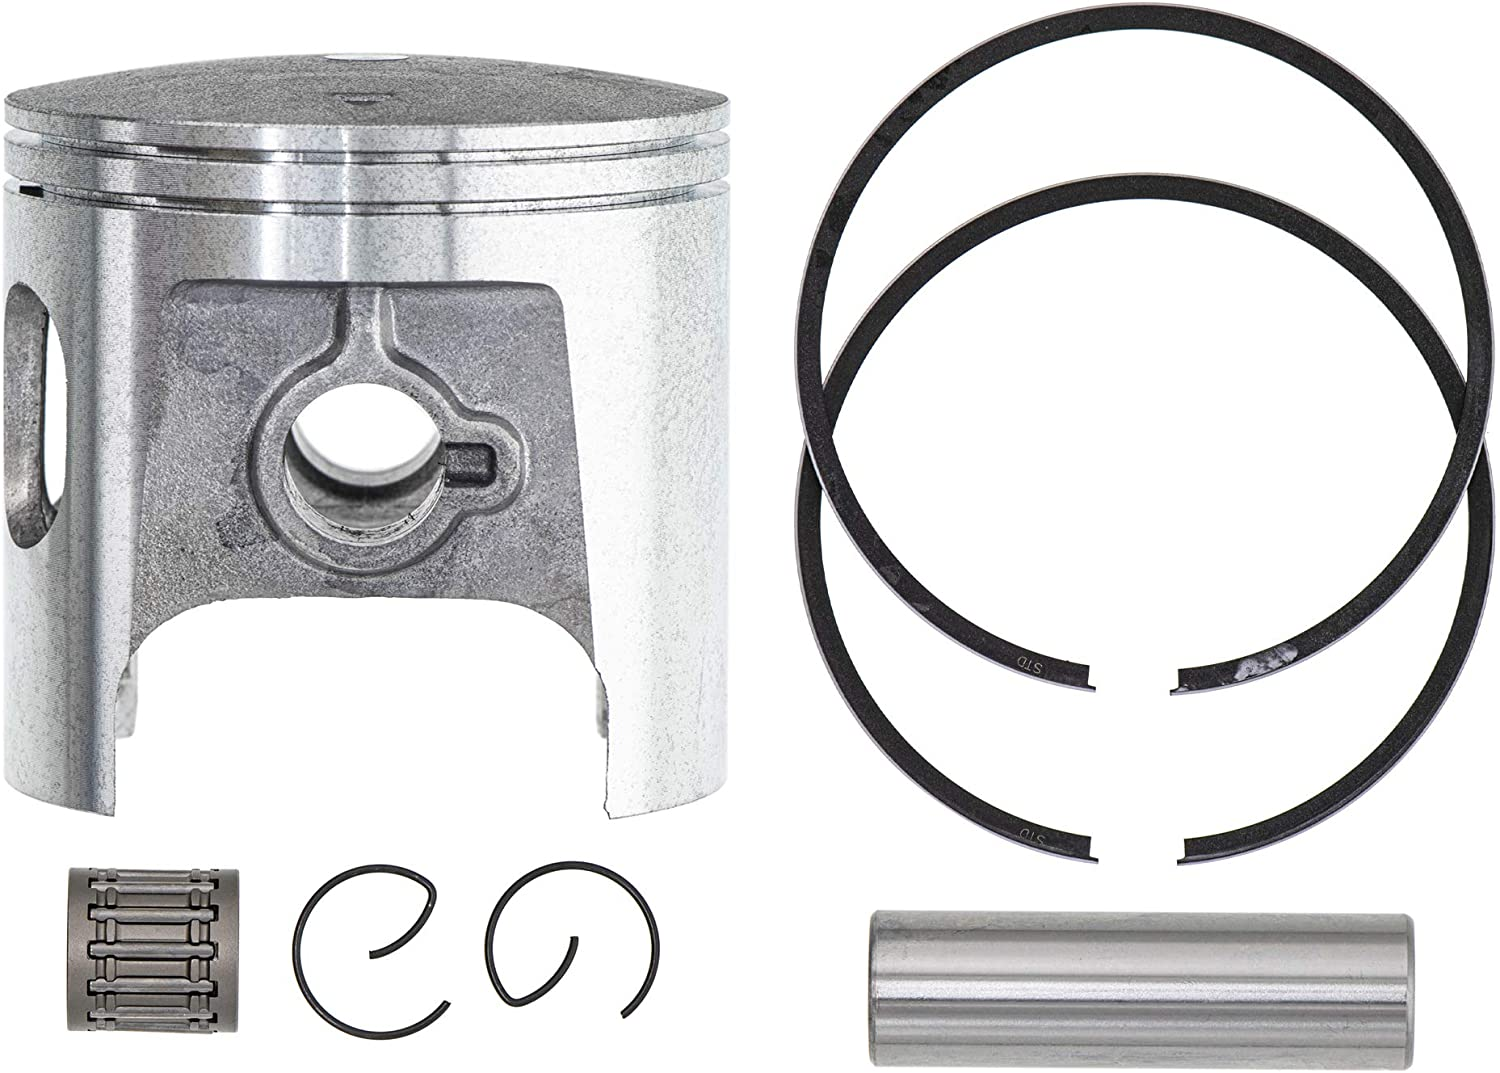 NICHE Cylinder Piston Gasket Kit For Big Boss Scrambler Sport Xplorer Trail Blazer 400